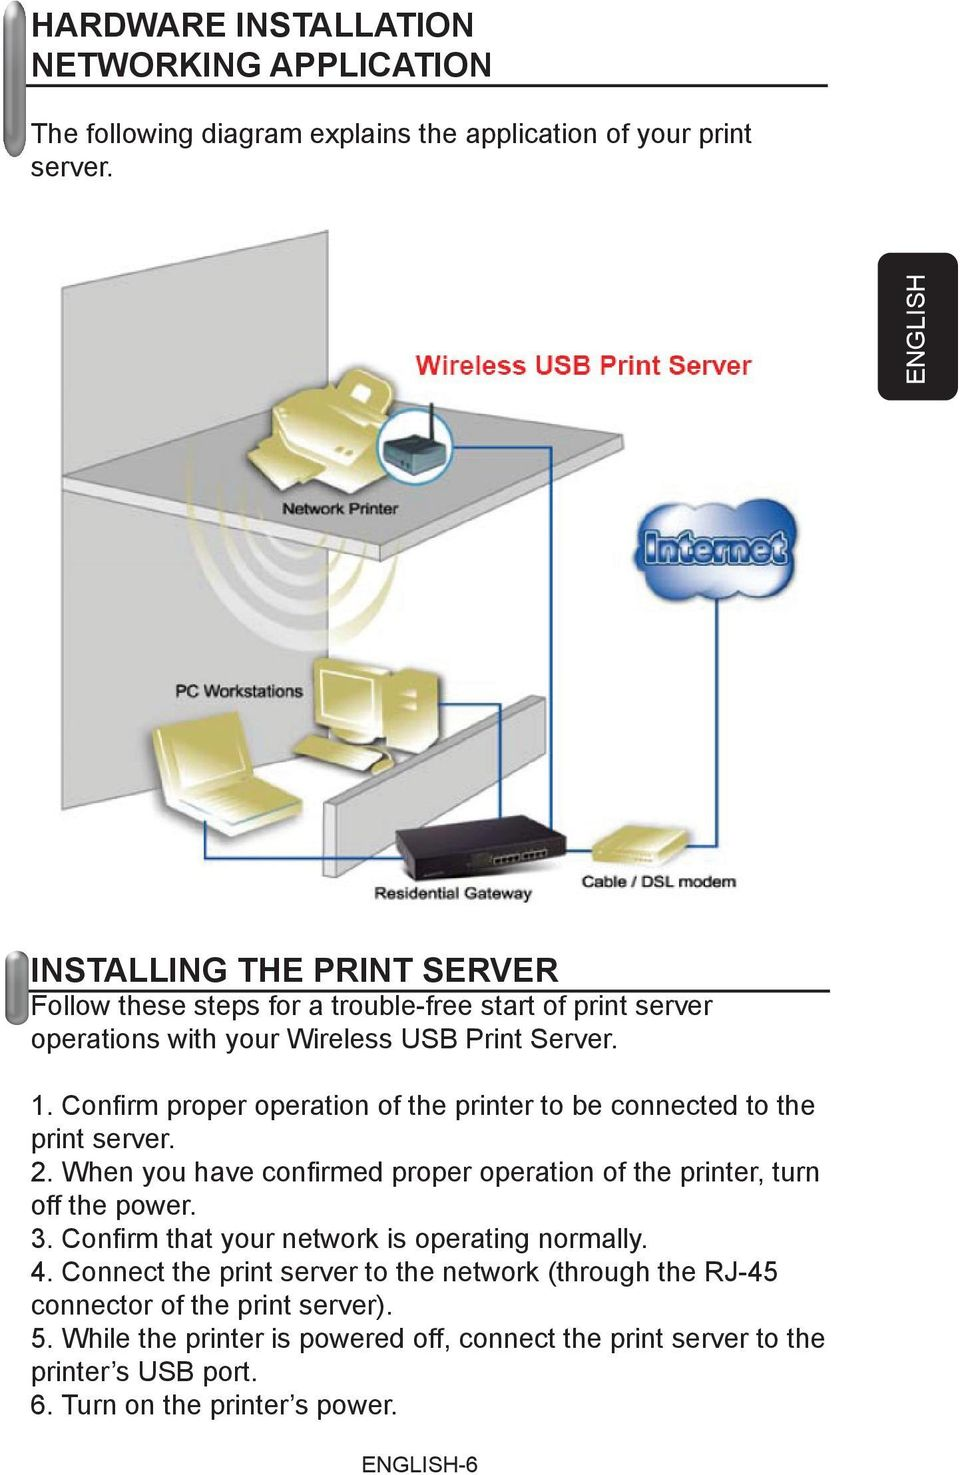 Confi rm proper operation of the printer to be connected to the print server. 2. When you have confi rmed proper operation of the printer, turn off the power. 3.